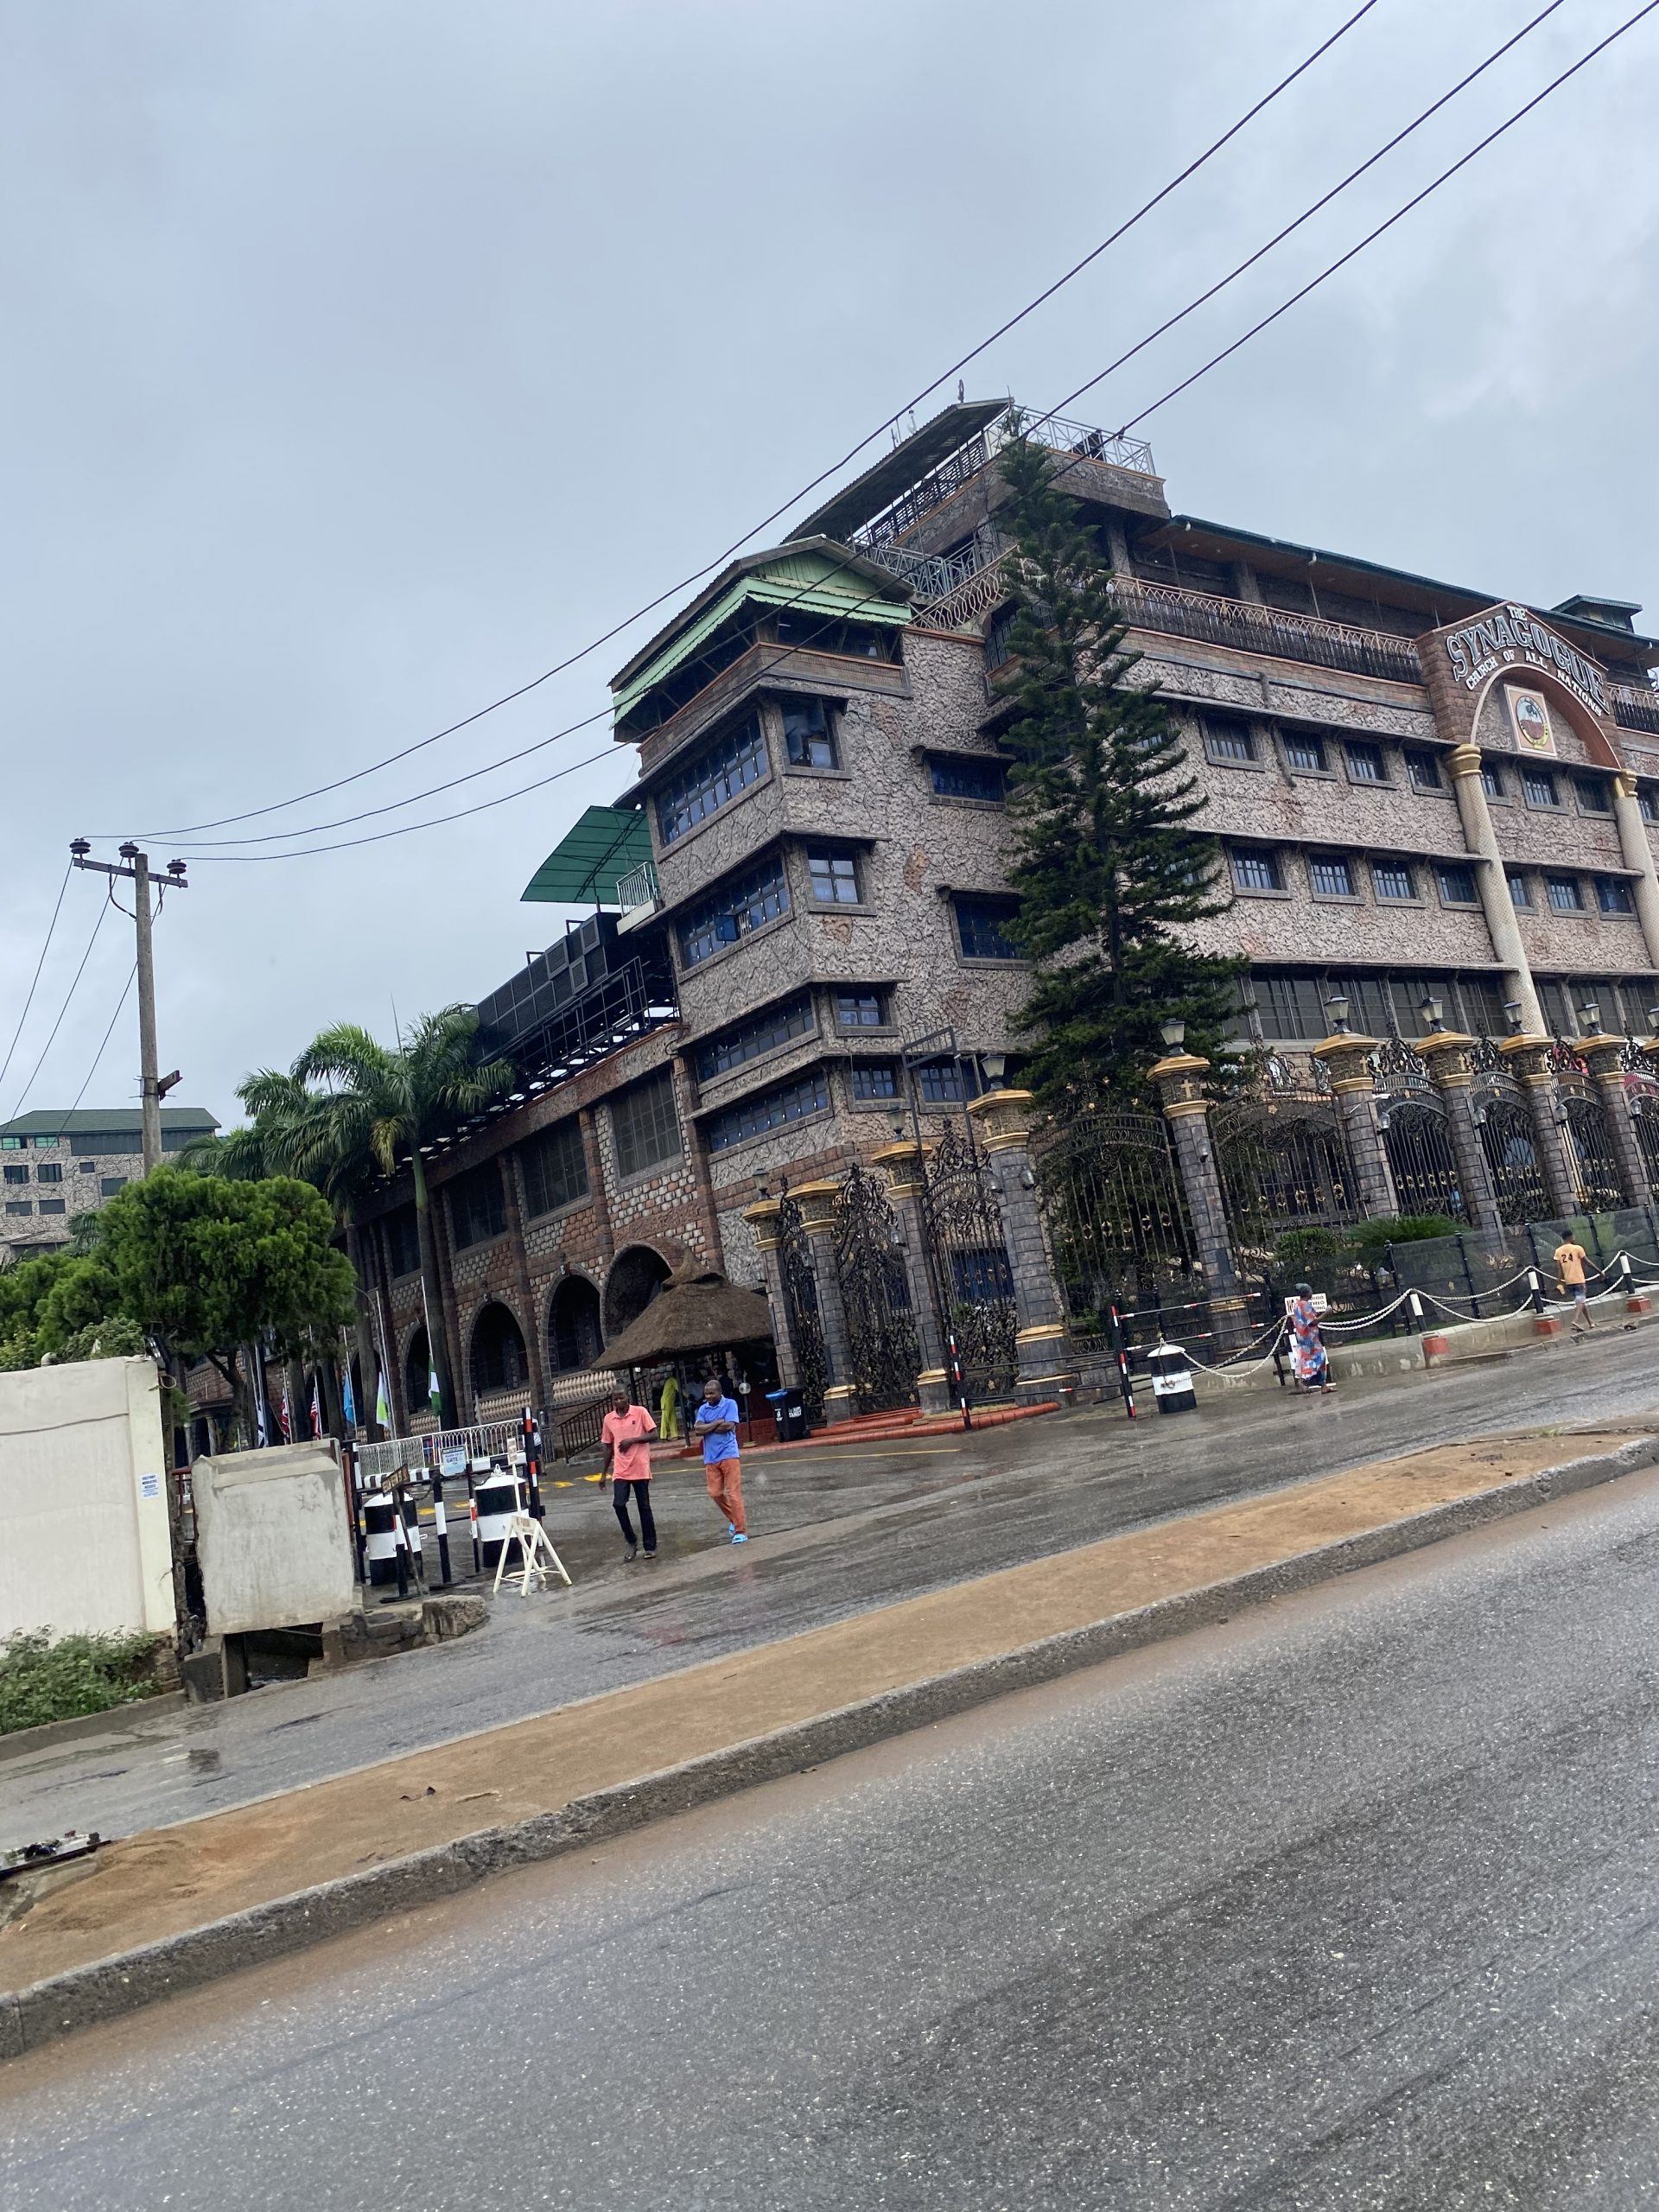 Deserted Synagogue Church of All Nations on Sunday morning - Photo by Taiwo Okanlawon